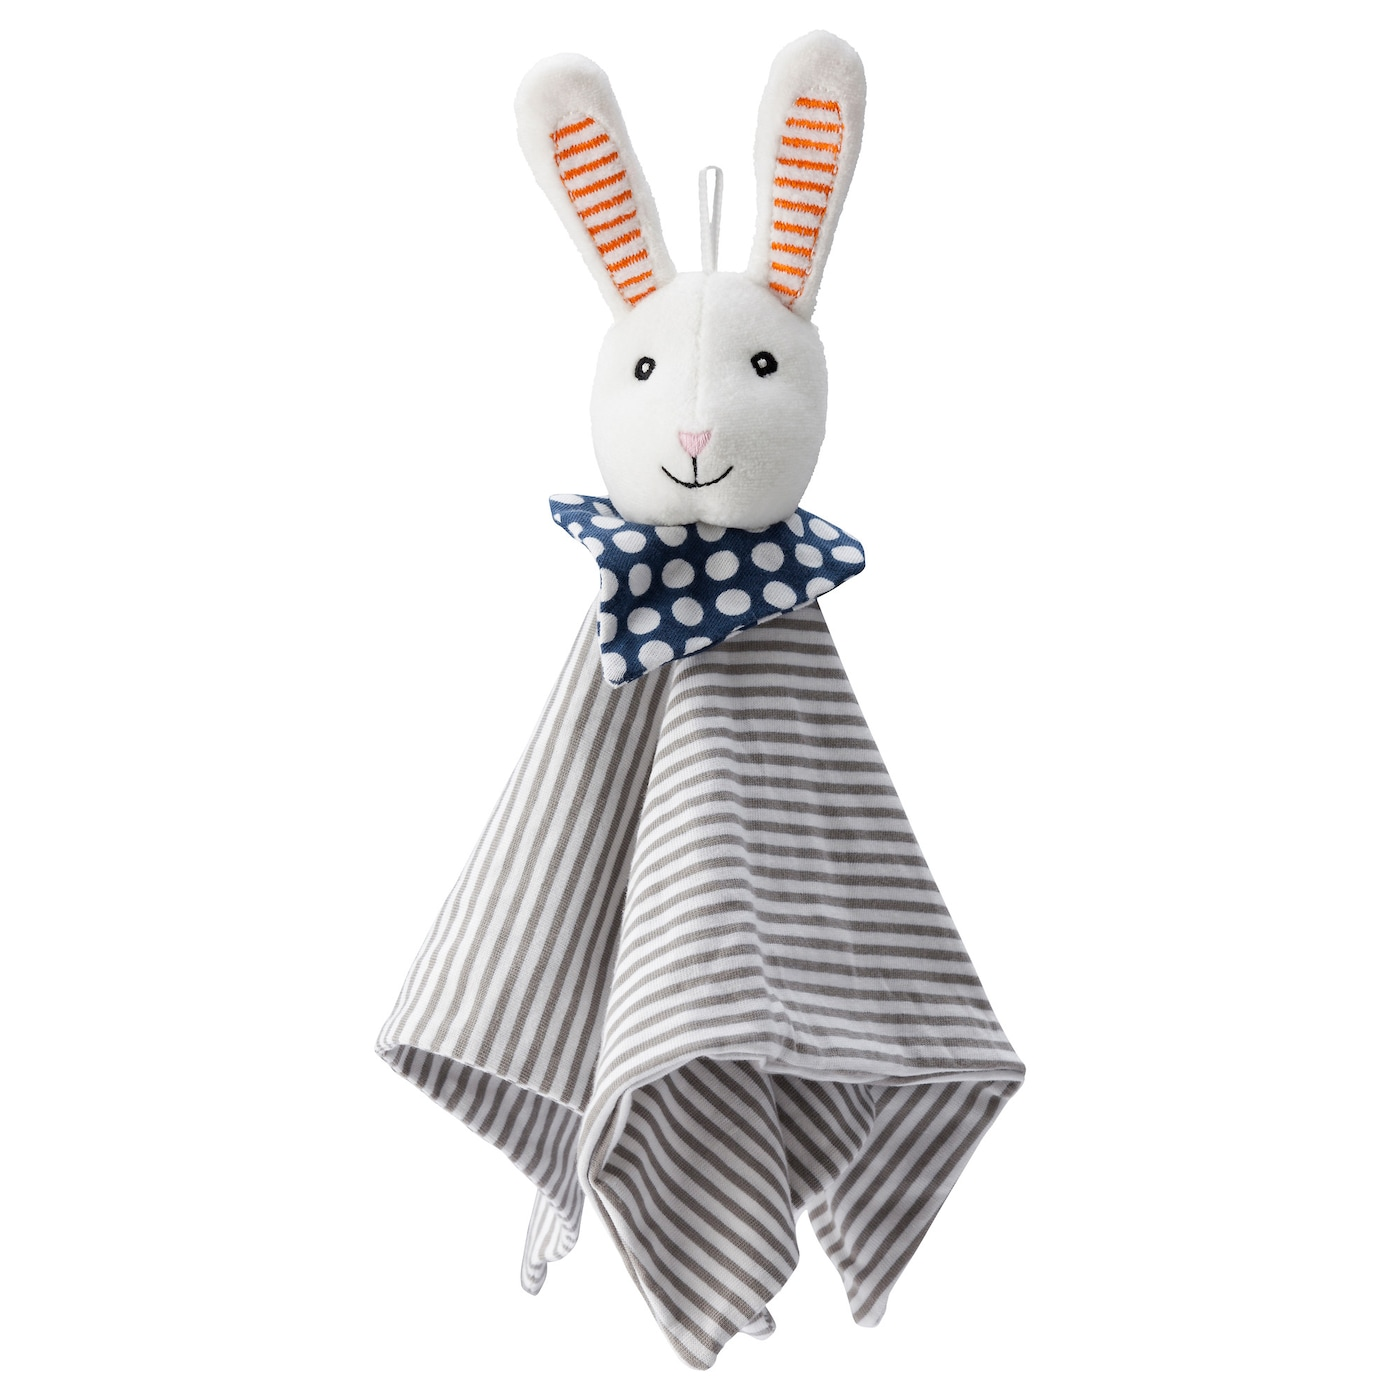 IKEA LEKA comfort blanket with soft toy